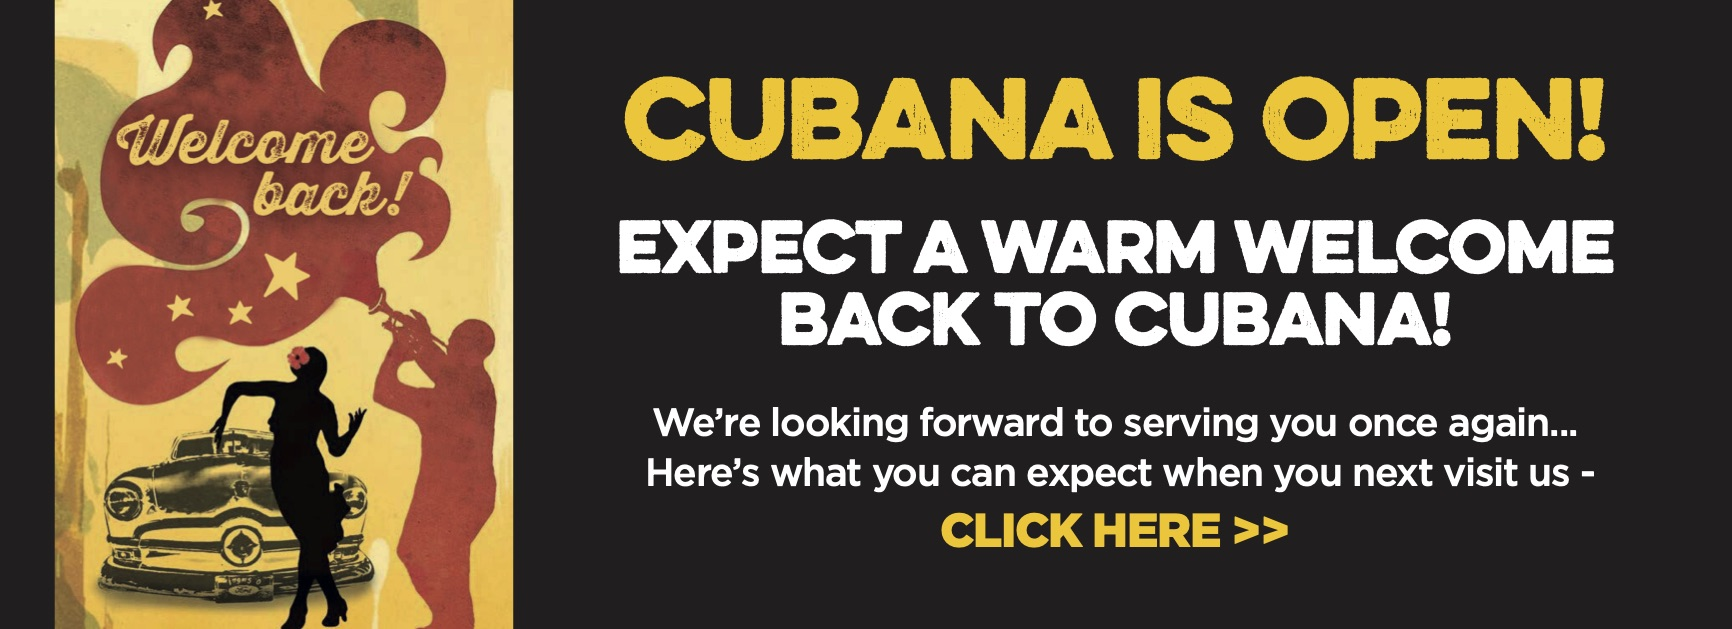 Cubana is Open